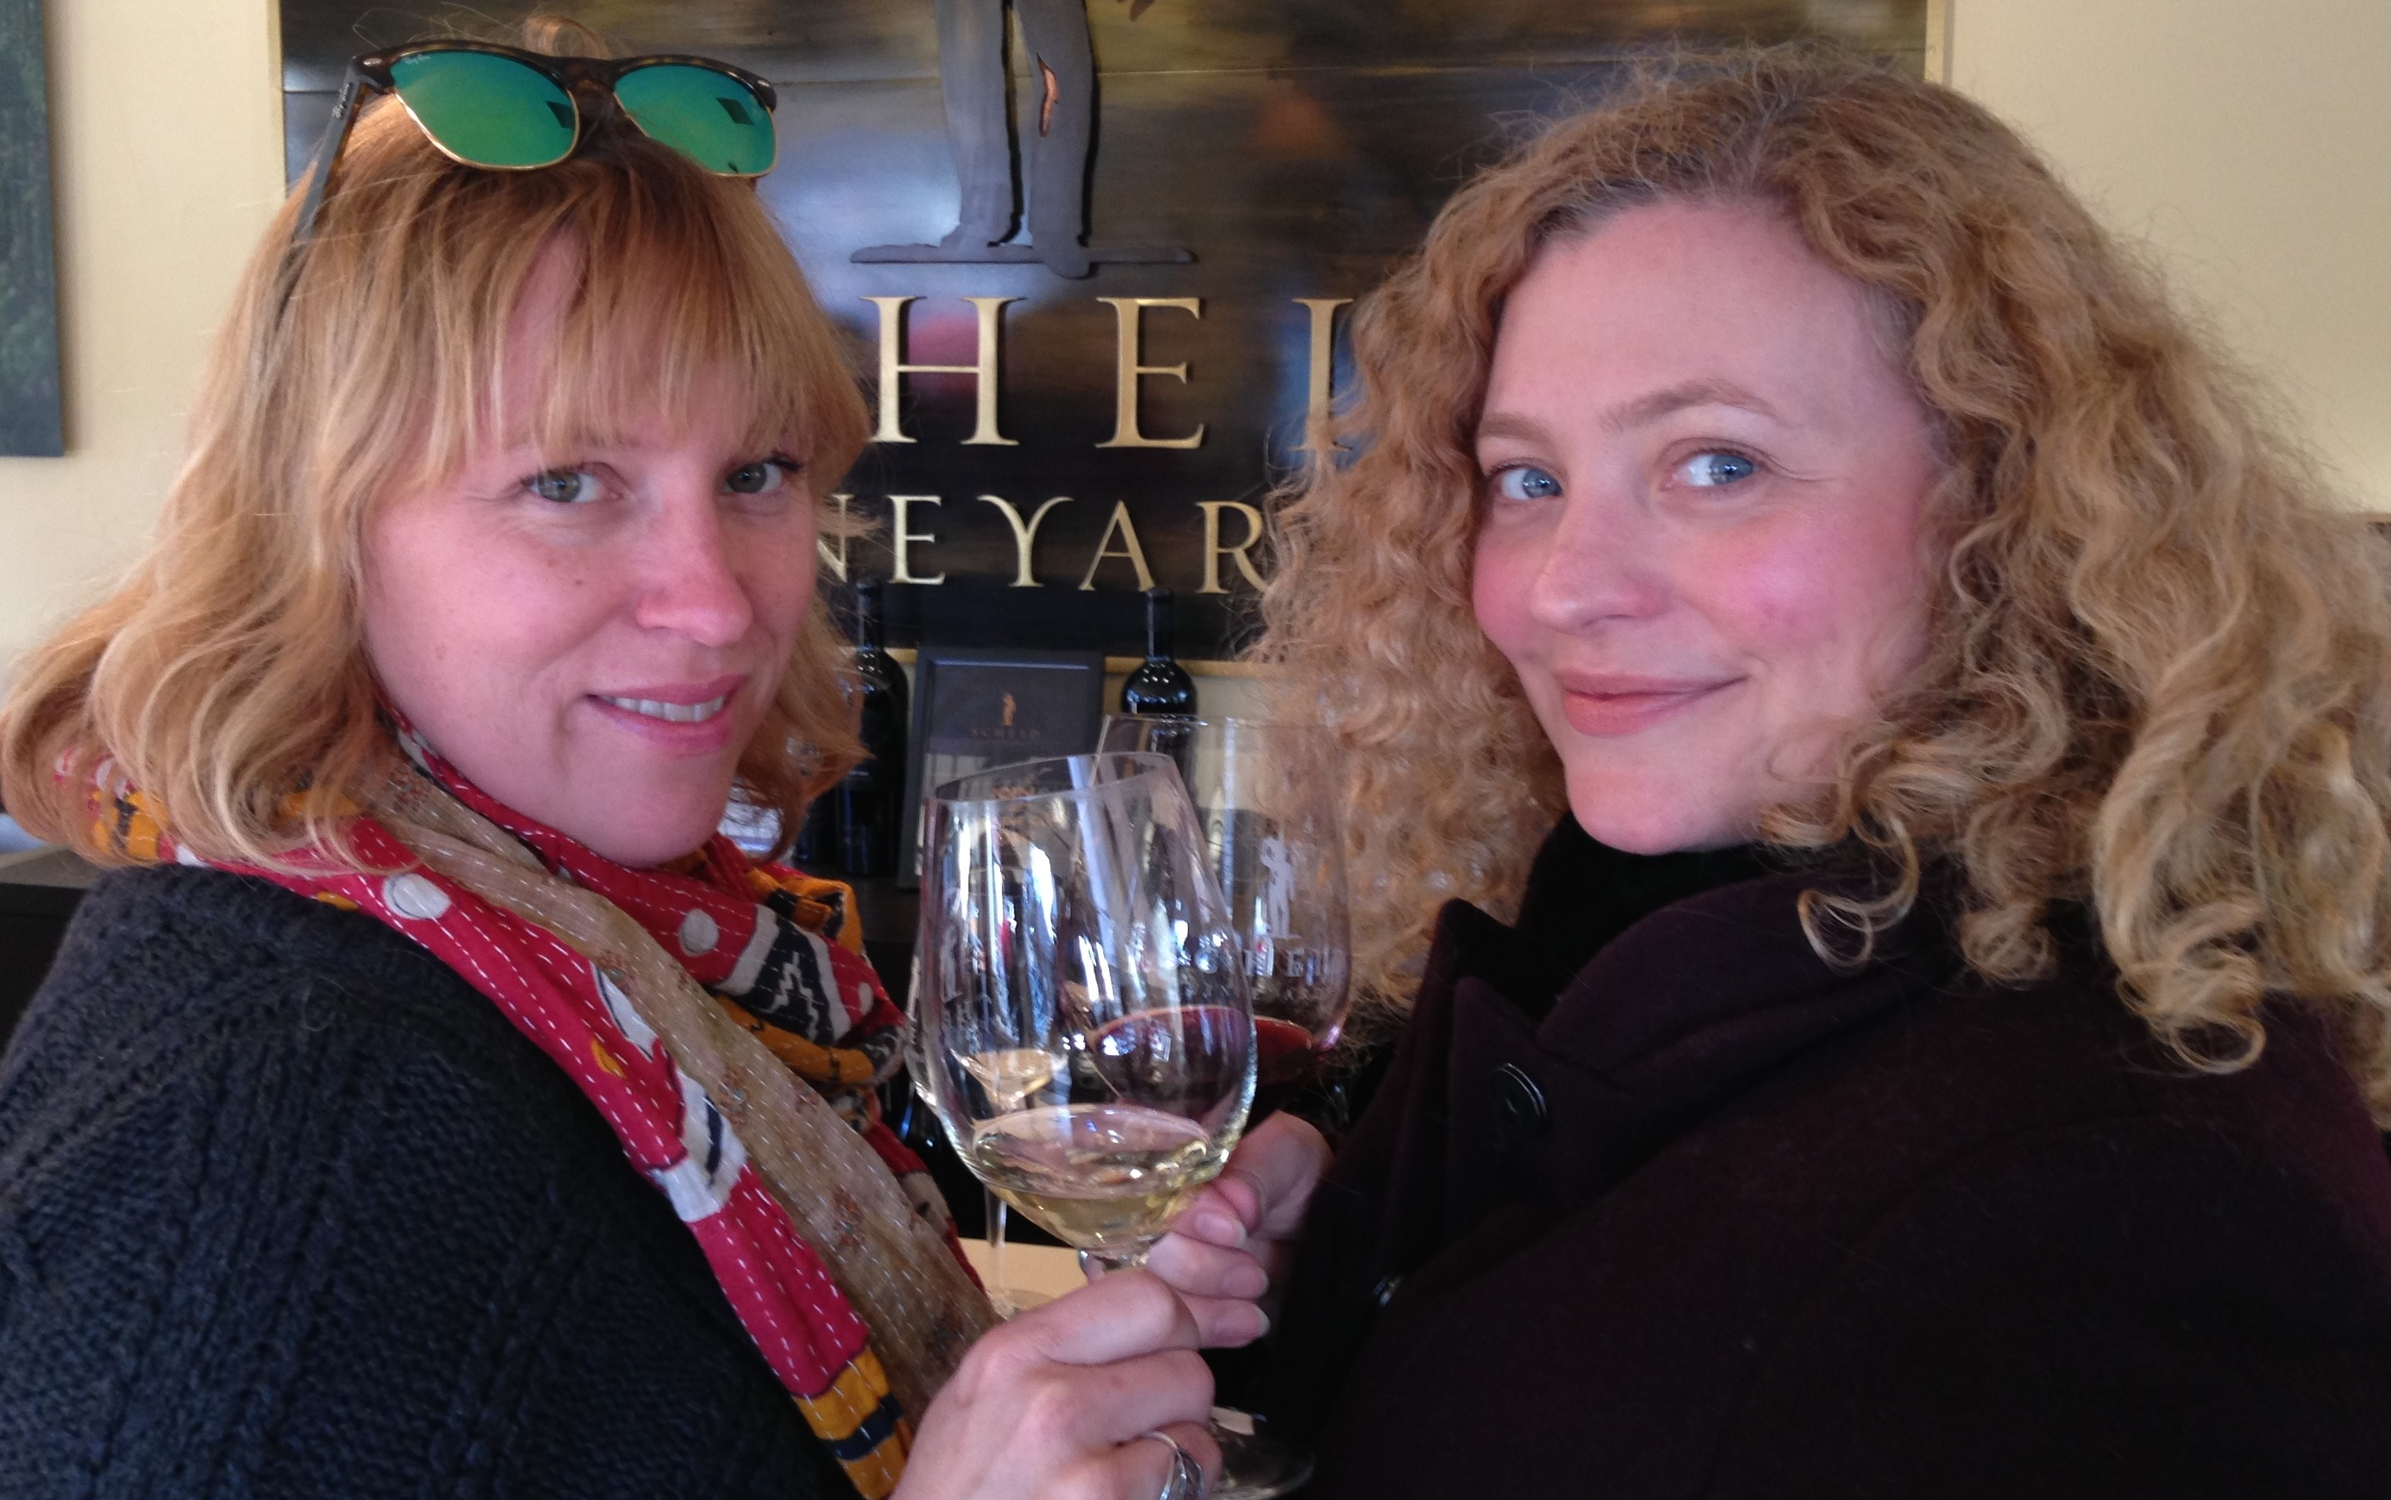 Jen, a soujourner from LA, also a KY native and also tasting companion of many, many years. Oh the wines we have shared!